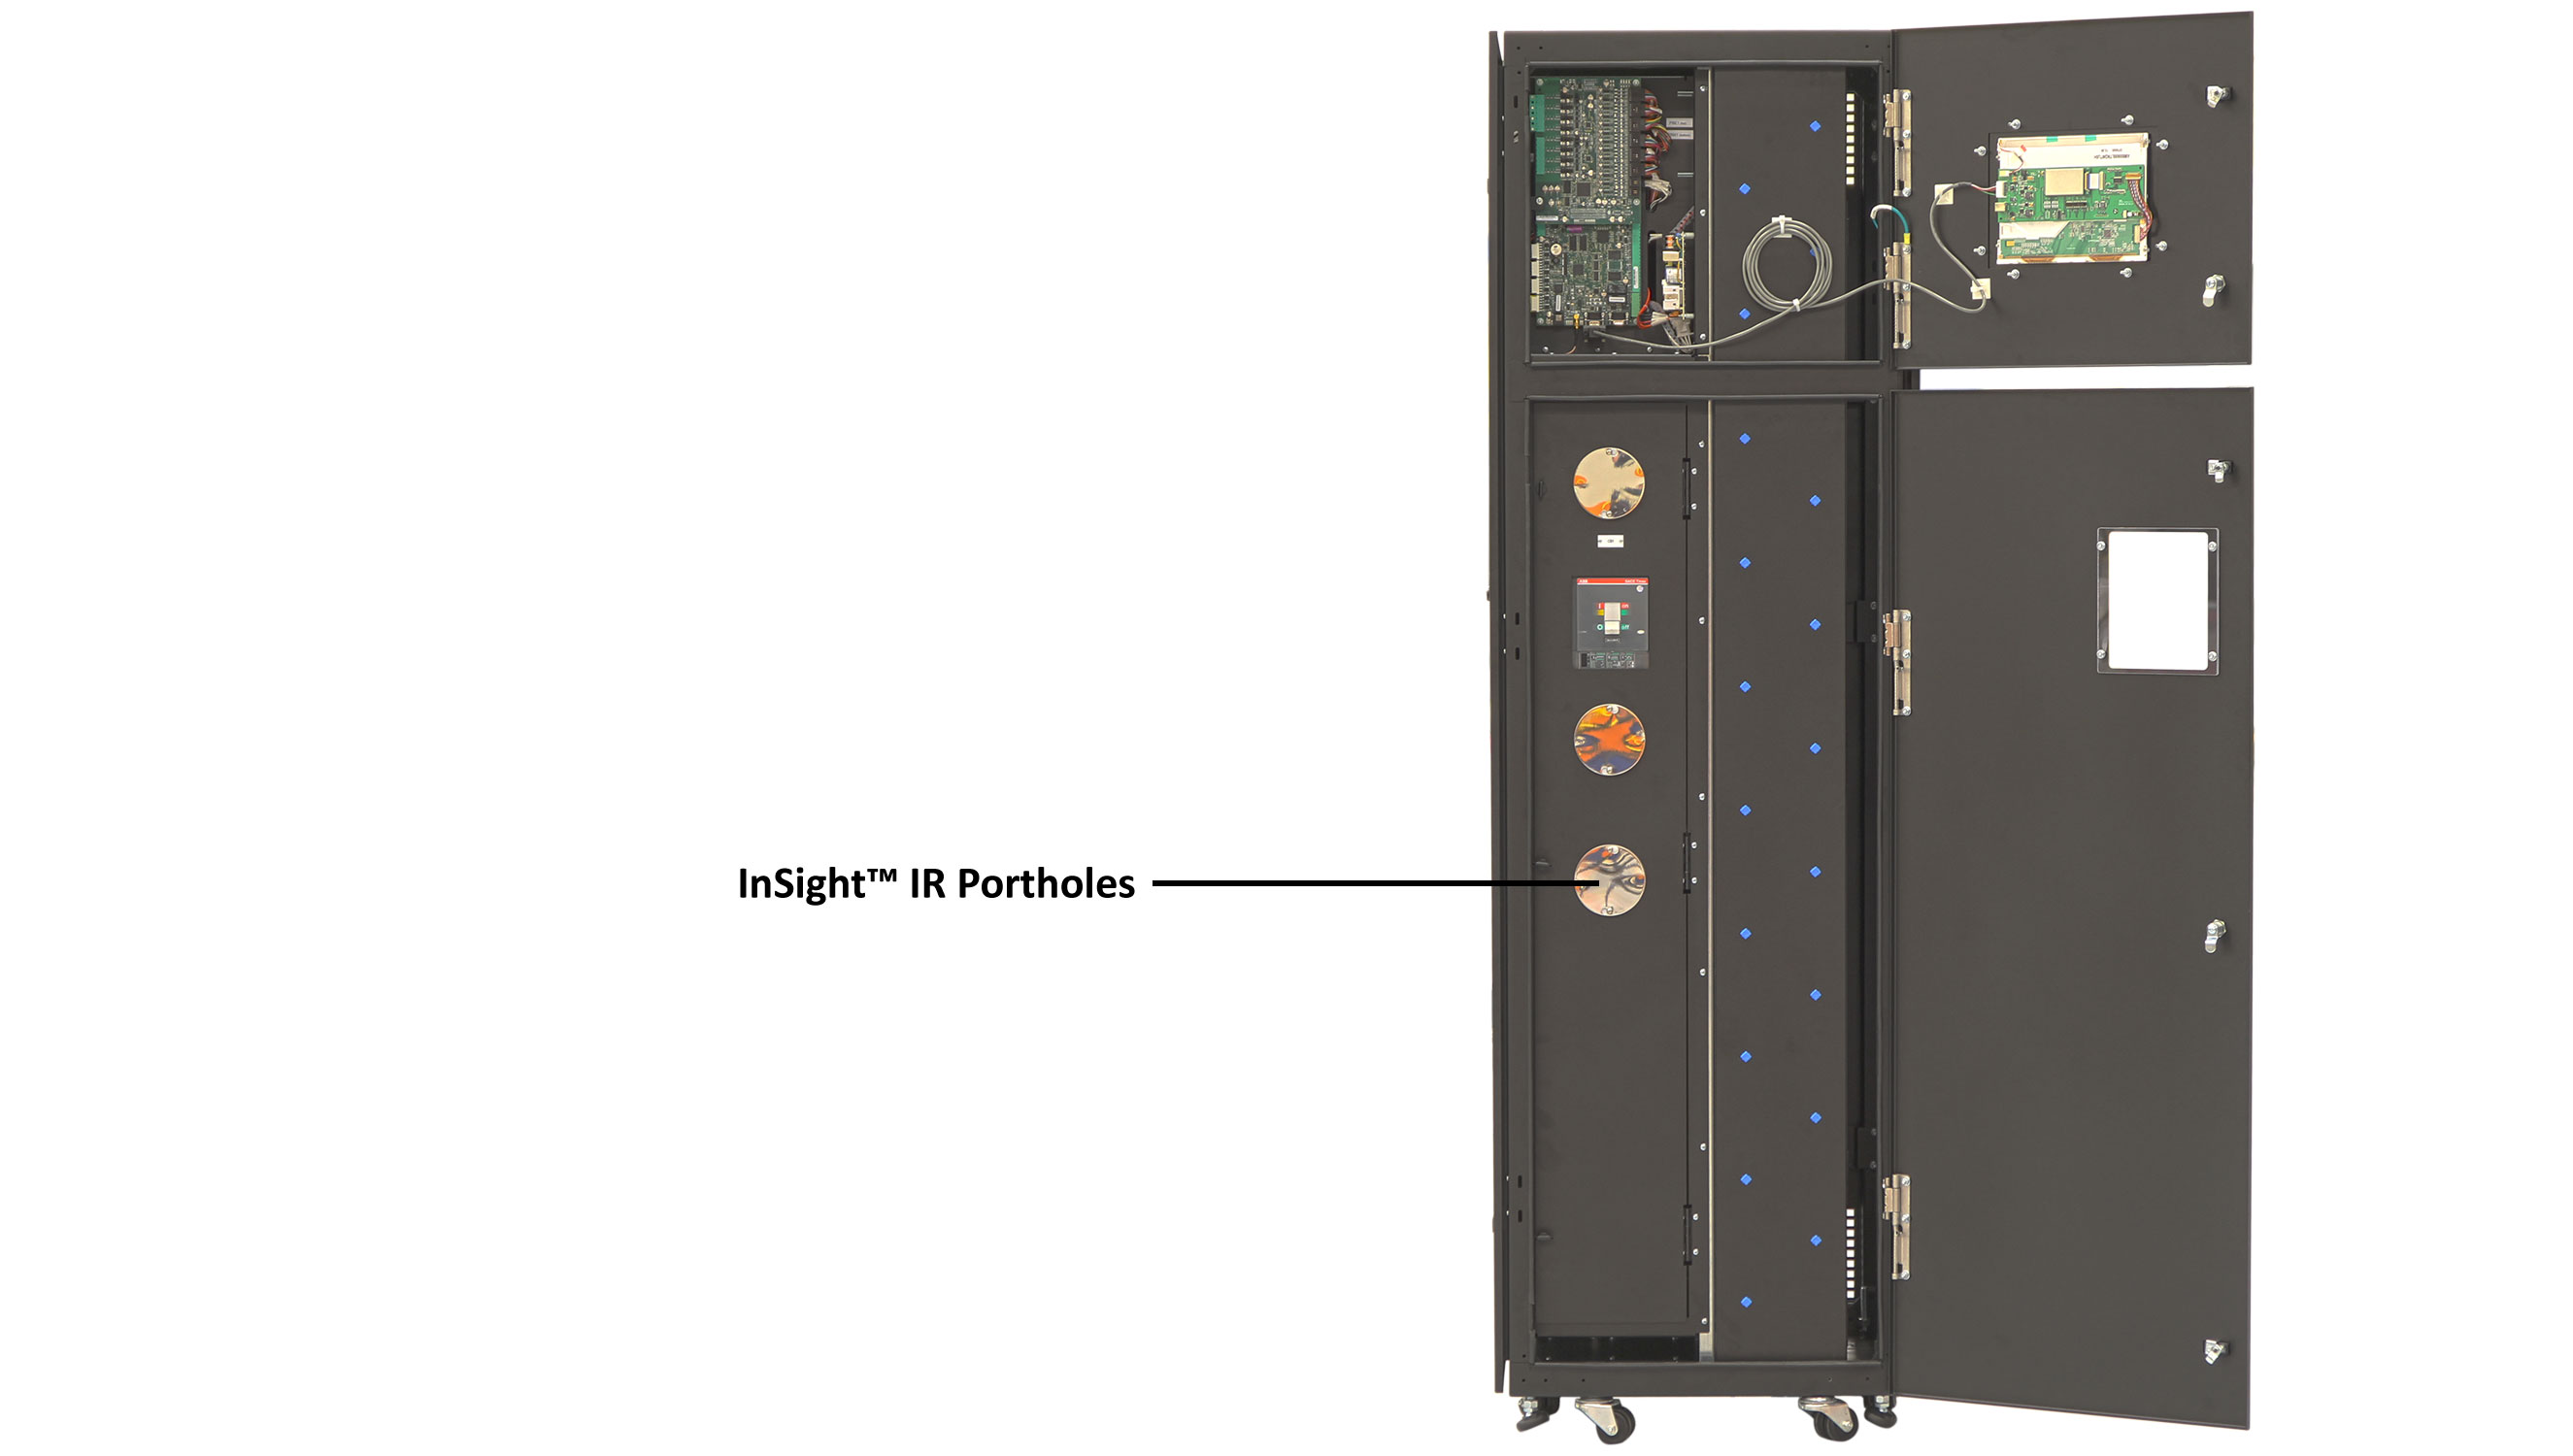 eRPP-FS Mechanical Overview, Front - Outer Door Open